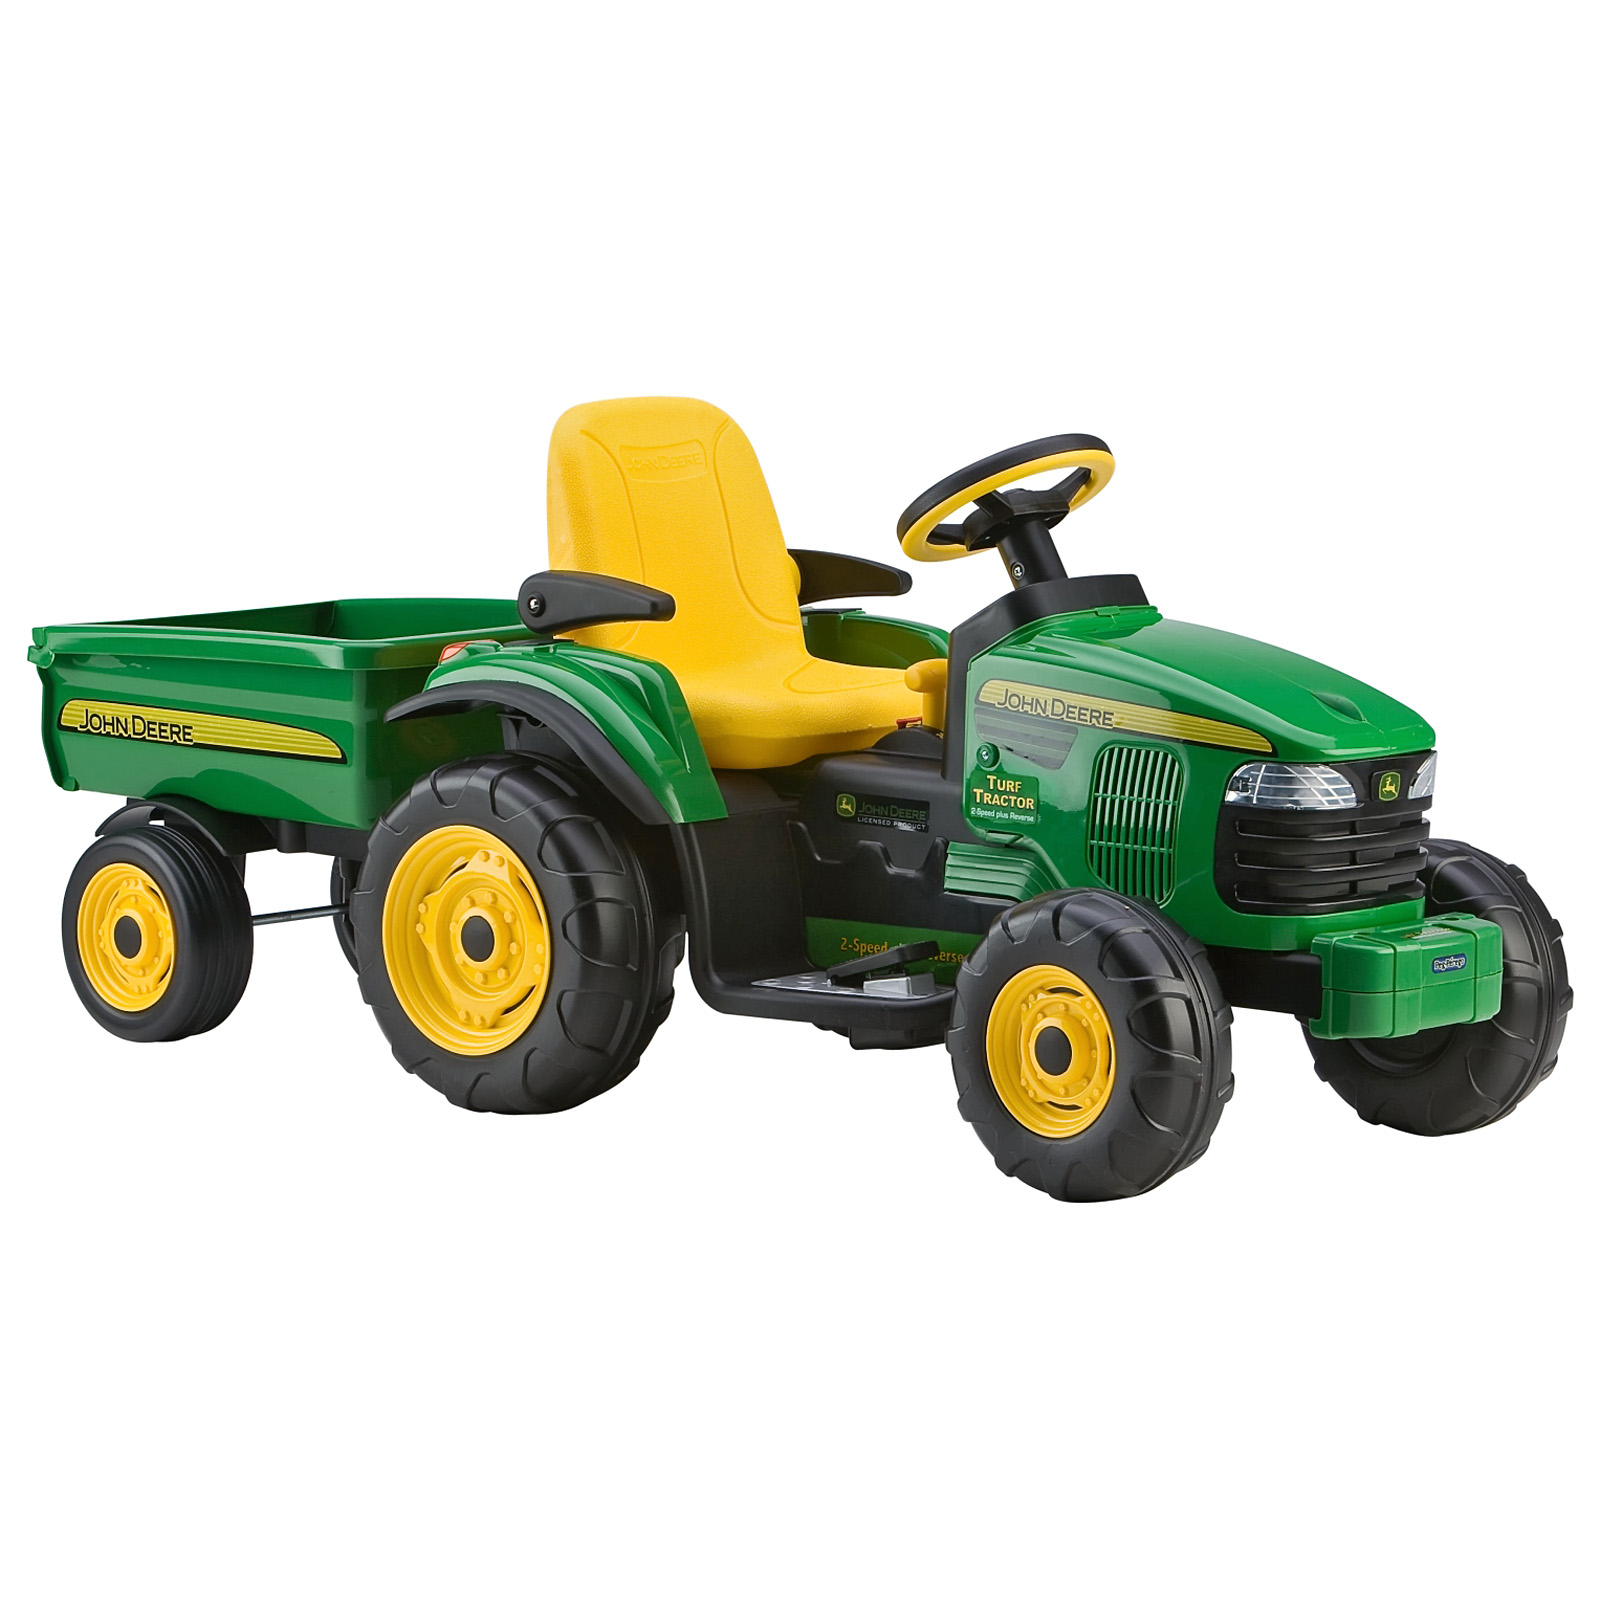 Electric 24 Volt John Deere Tractors Not Lossing Wiring Diagram For Battery Operated Toys Ride On 6 Utility Tractor 6210 Who Makes